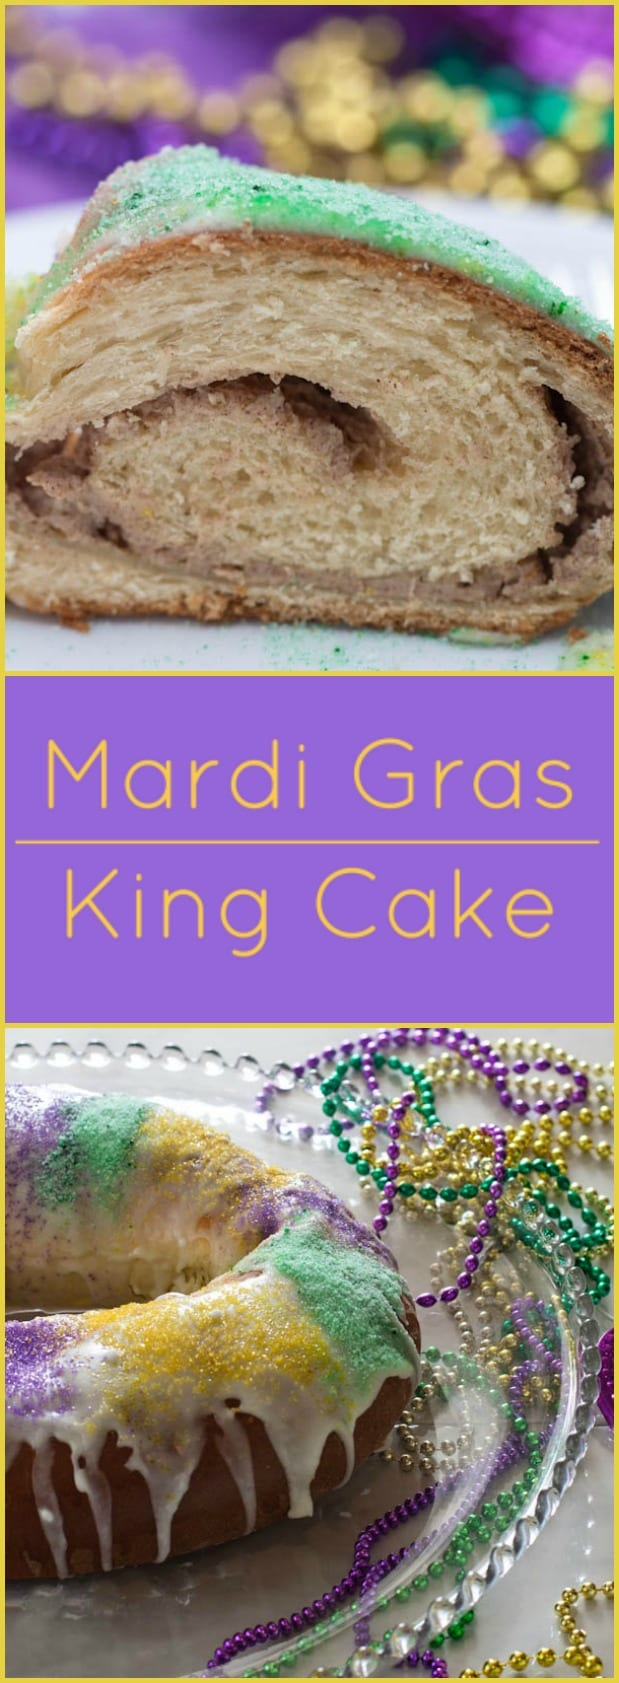 King Cake. A must have for any Mardi Gras party! Filled with cinnamon cream cheese.